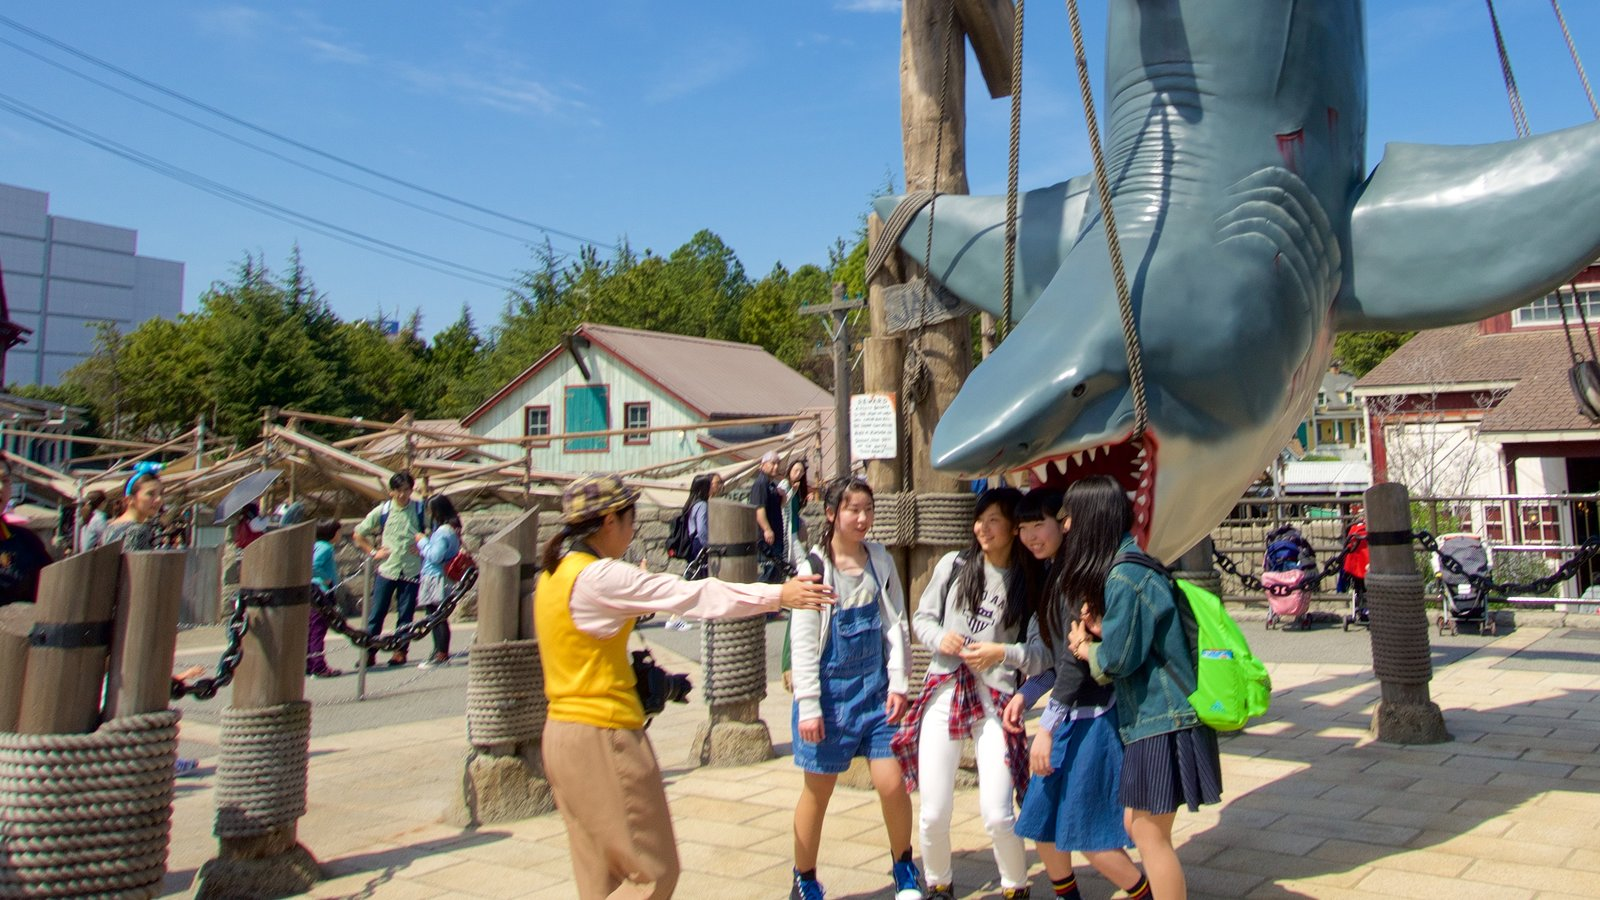 Universal Studios Japan® as well as a small group of people